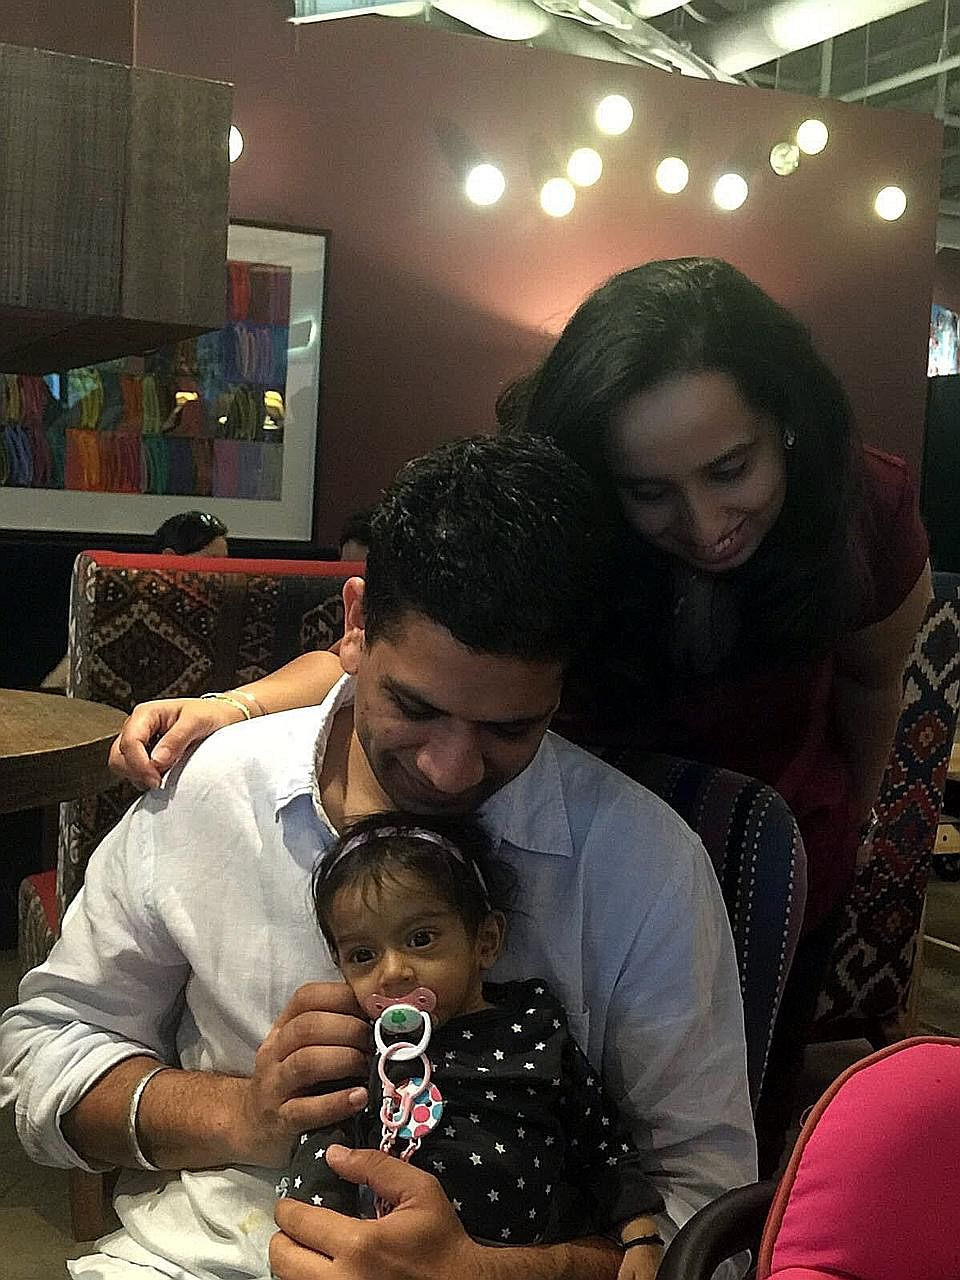 Eight-month-old Zarouhi is fighting for her life at NUH. Her father, Mr Sandeep, donated part of his liver but the transplant failed. Her mother, Ms Wilson, is being assessed for suitability but the couple are looking for a standby donor in case she